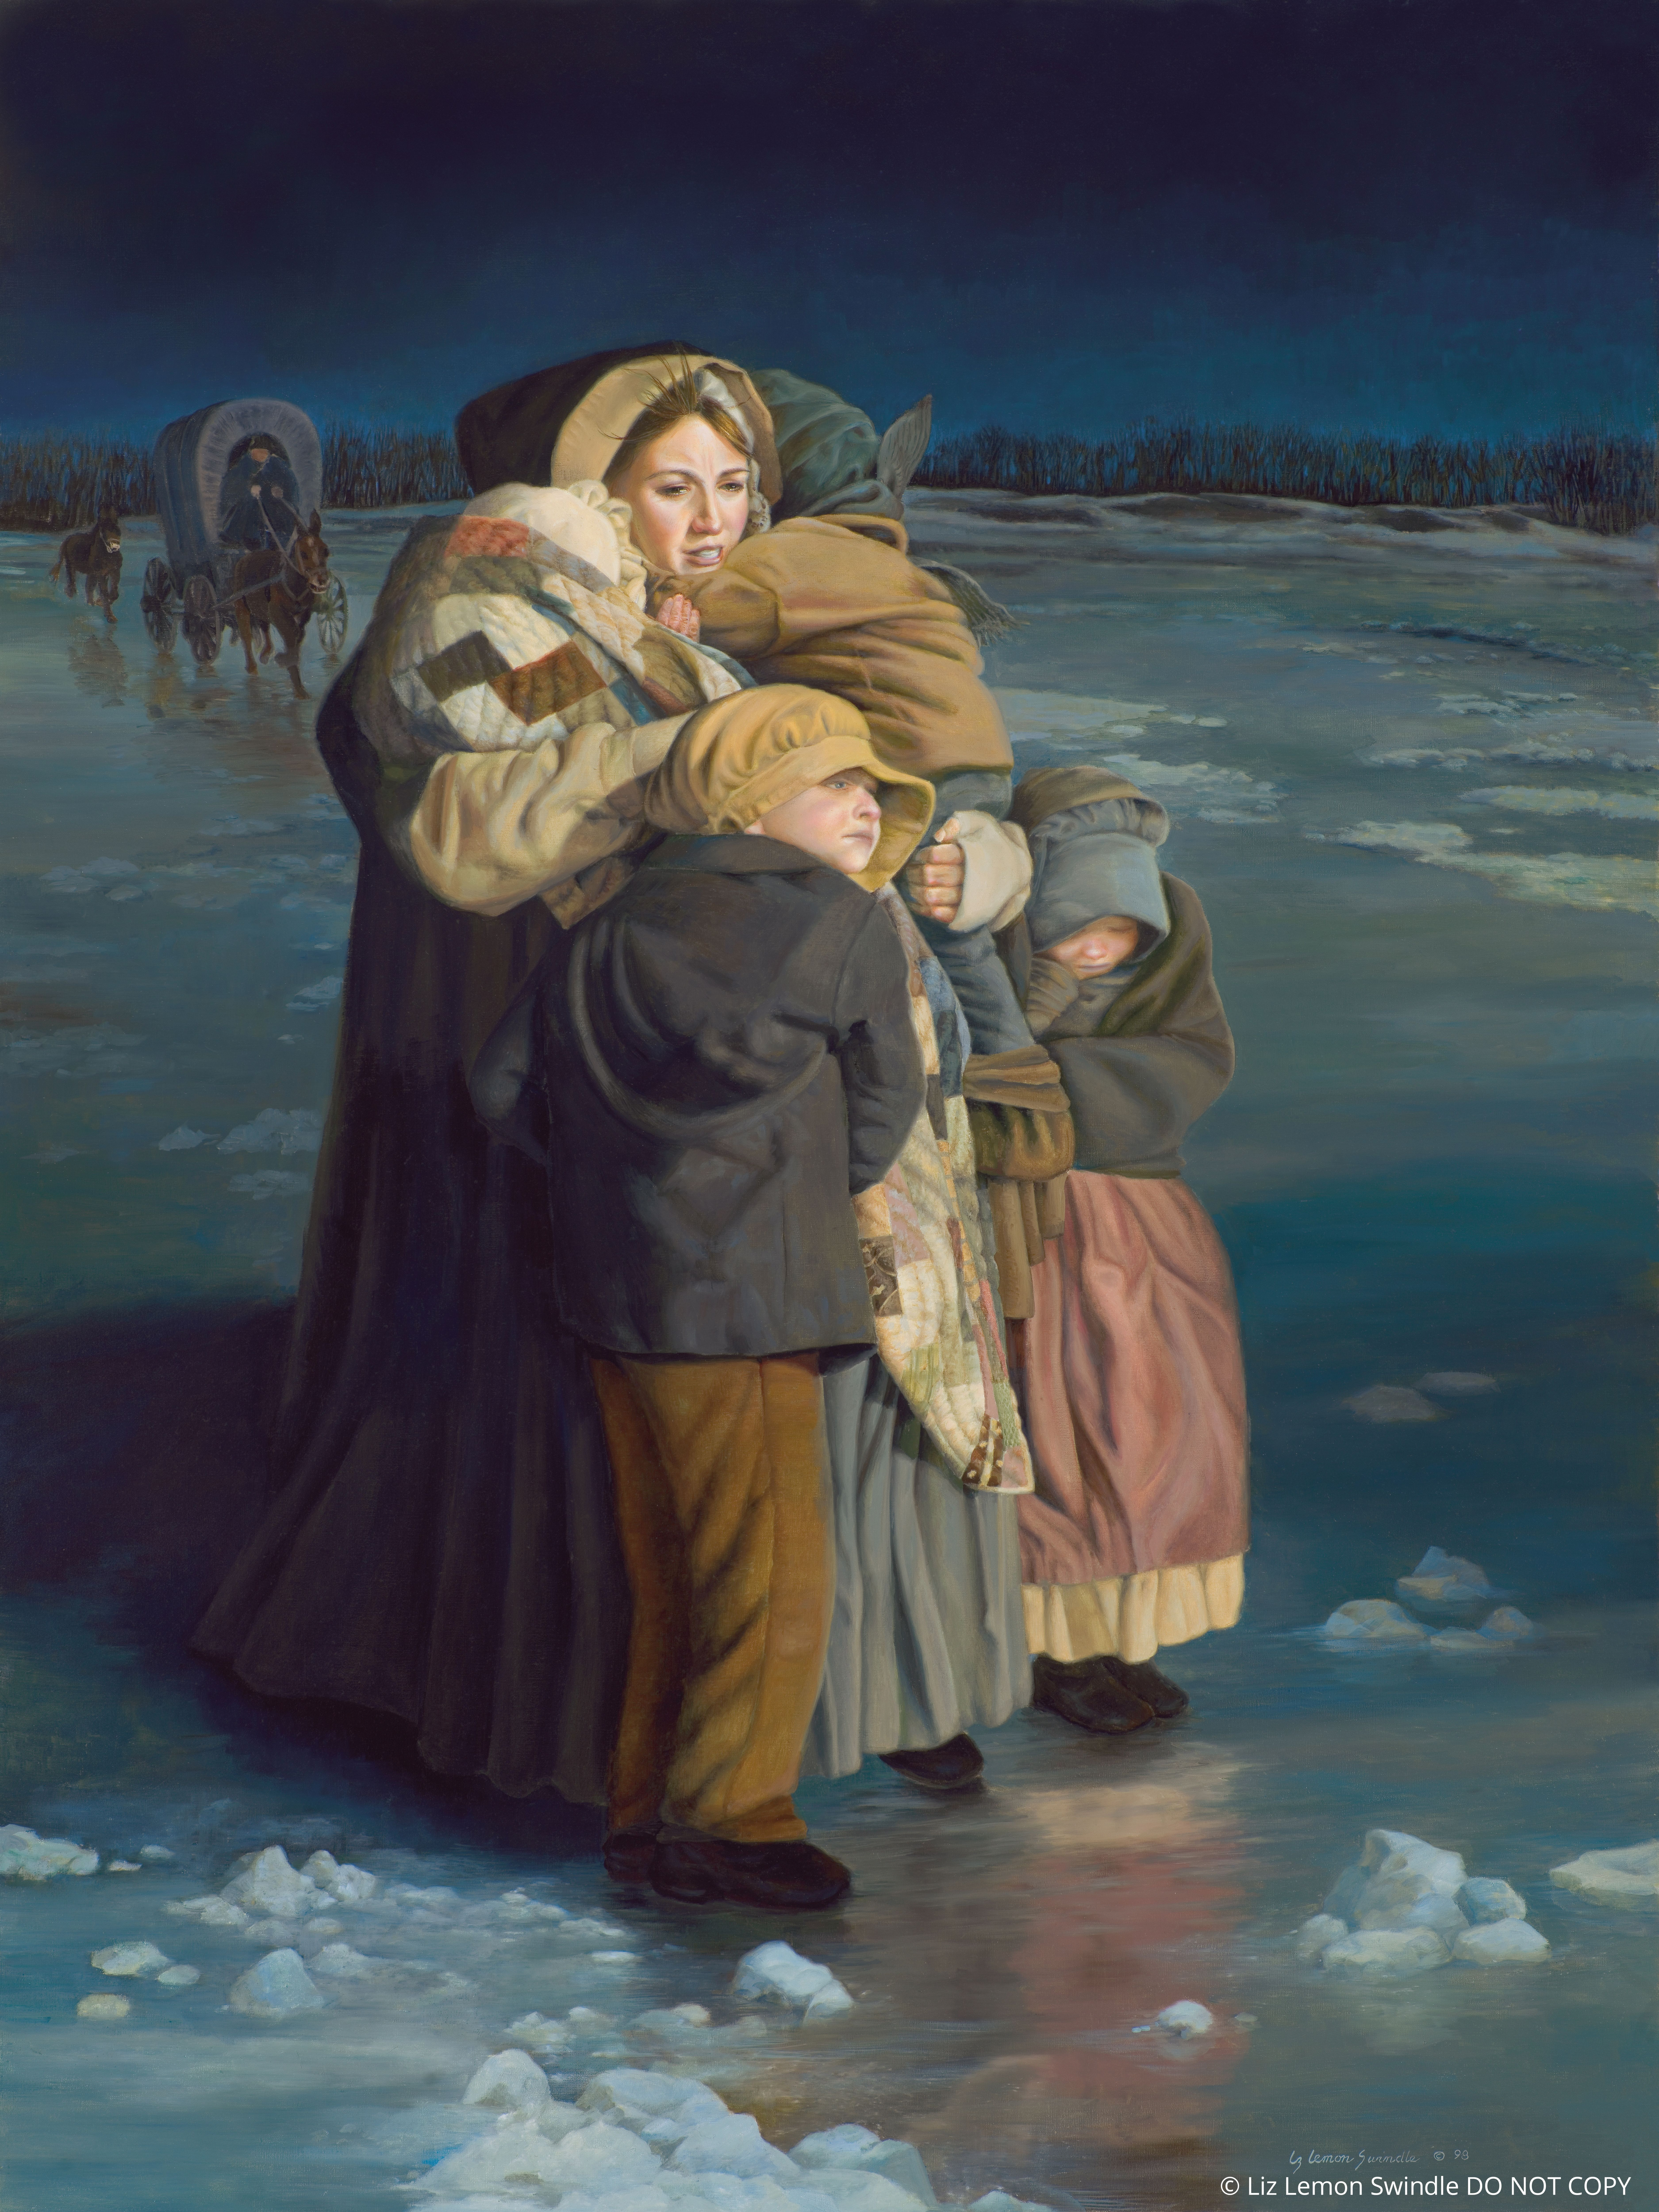 Of One Heart (Emma Crossing the Ice), by Liz Lemon Swindle; GAB 96; Teachings of Presidents of the Church: Joseph Smith (2007), 369. © Liz Lemon Swindle: DO NOT COPY. This asset is for Church use and online viewing only. © undefined ipCode 1.